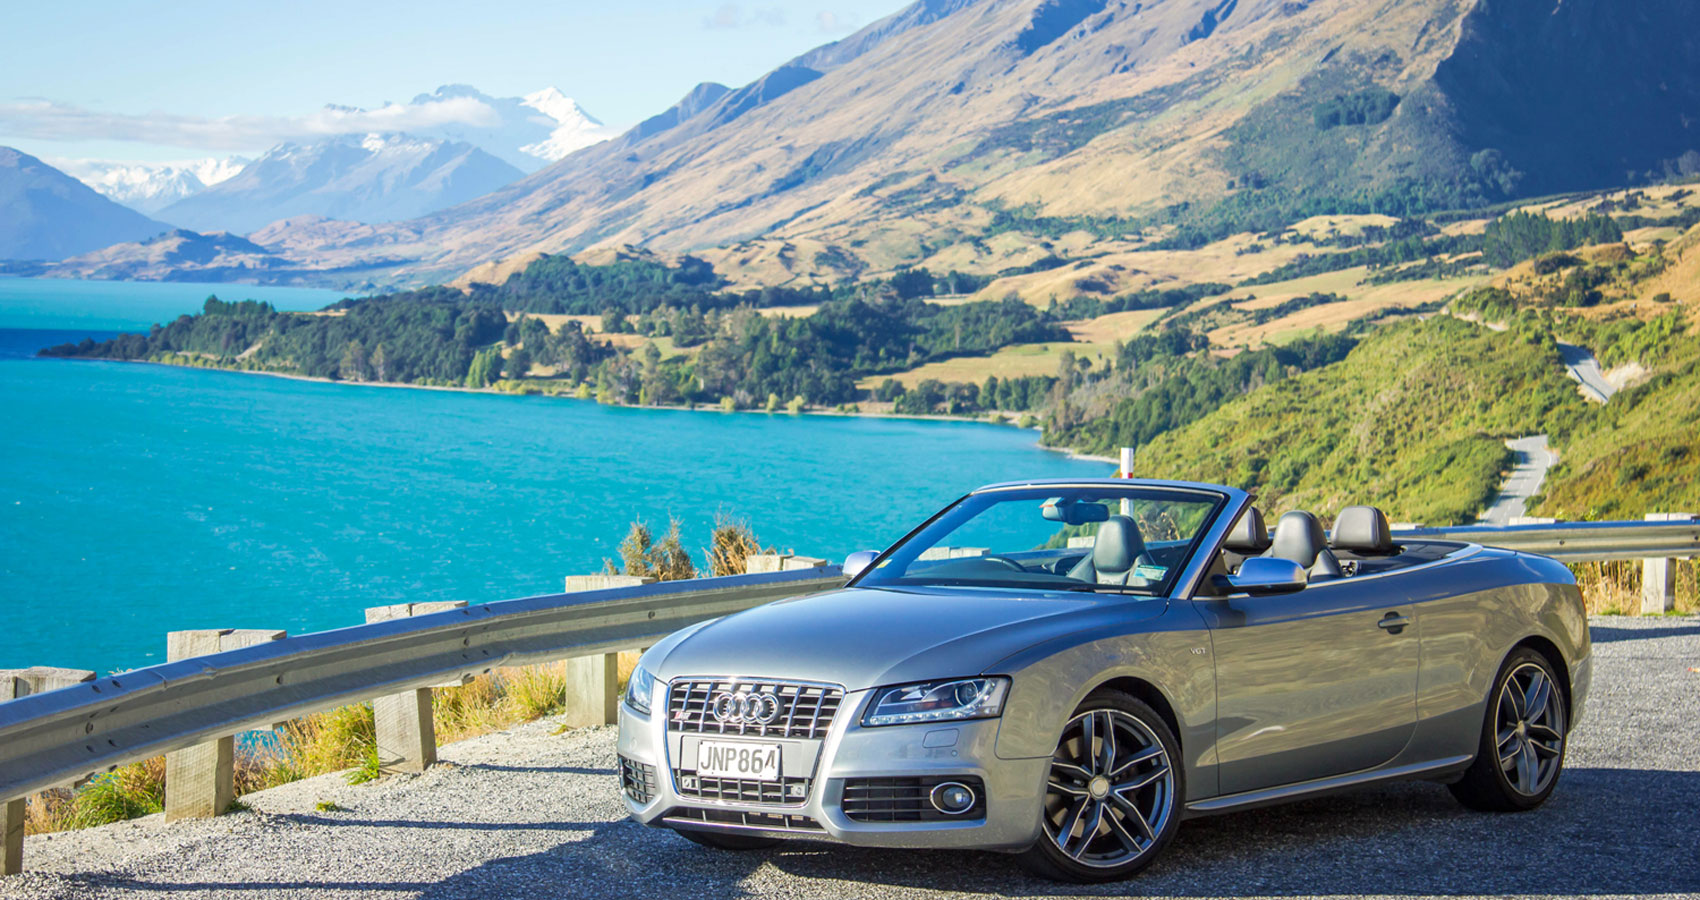 Queenstown Rental Cars Car Rentals In Queenstown Nz